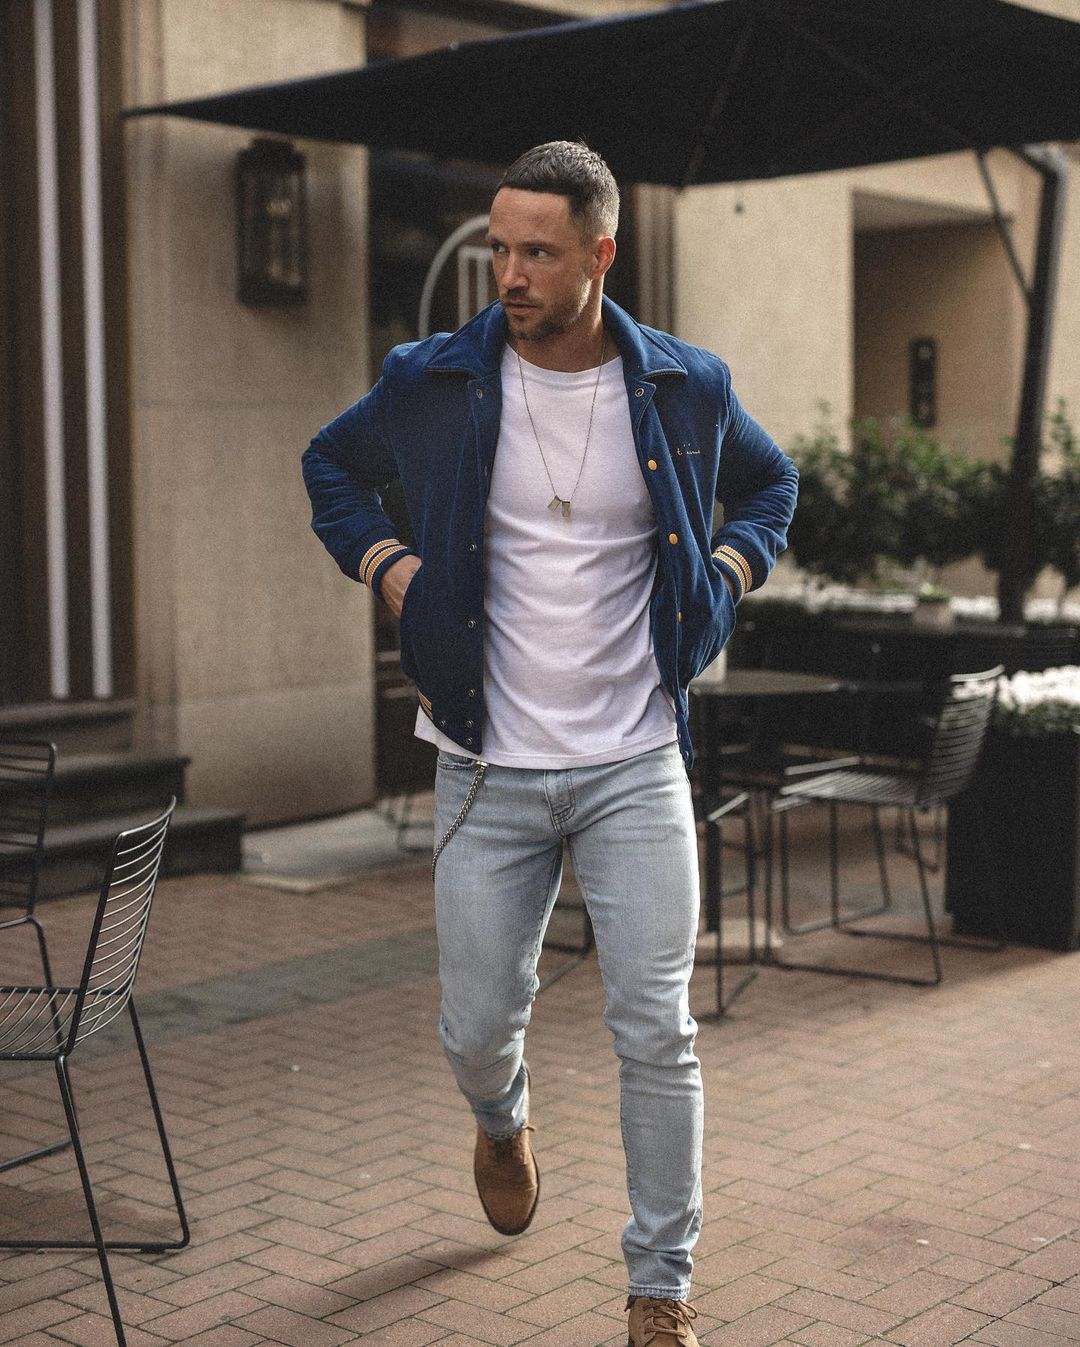 10 Hot Guys of Instagram